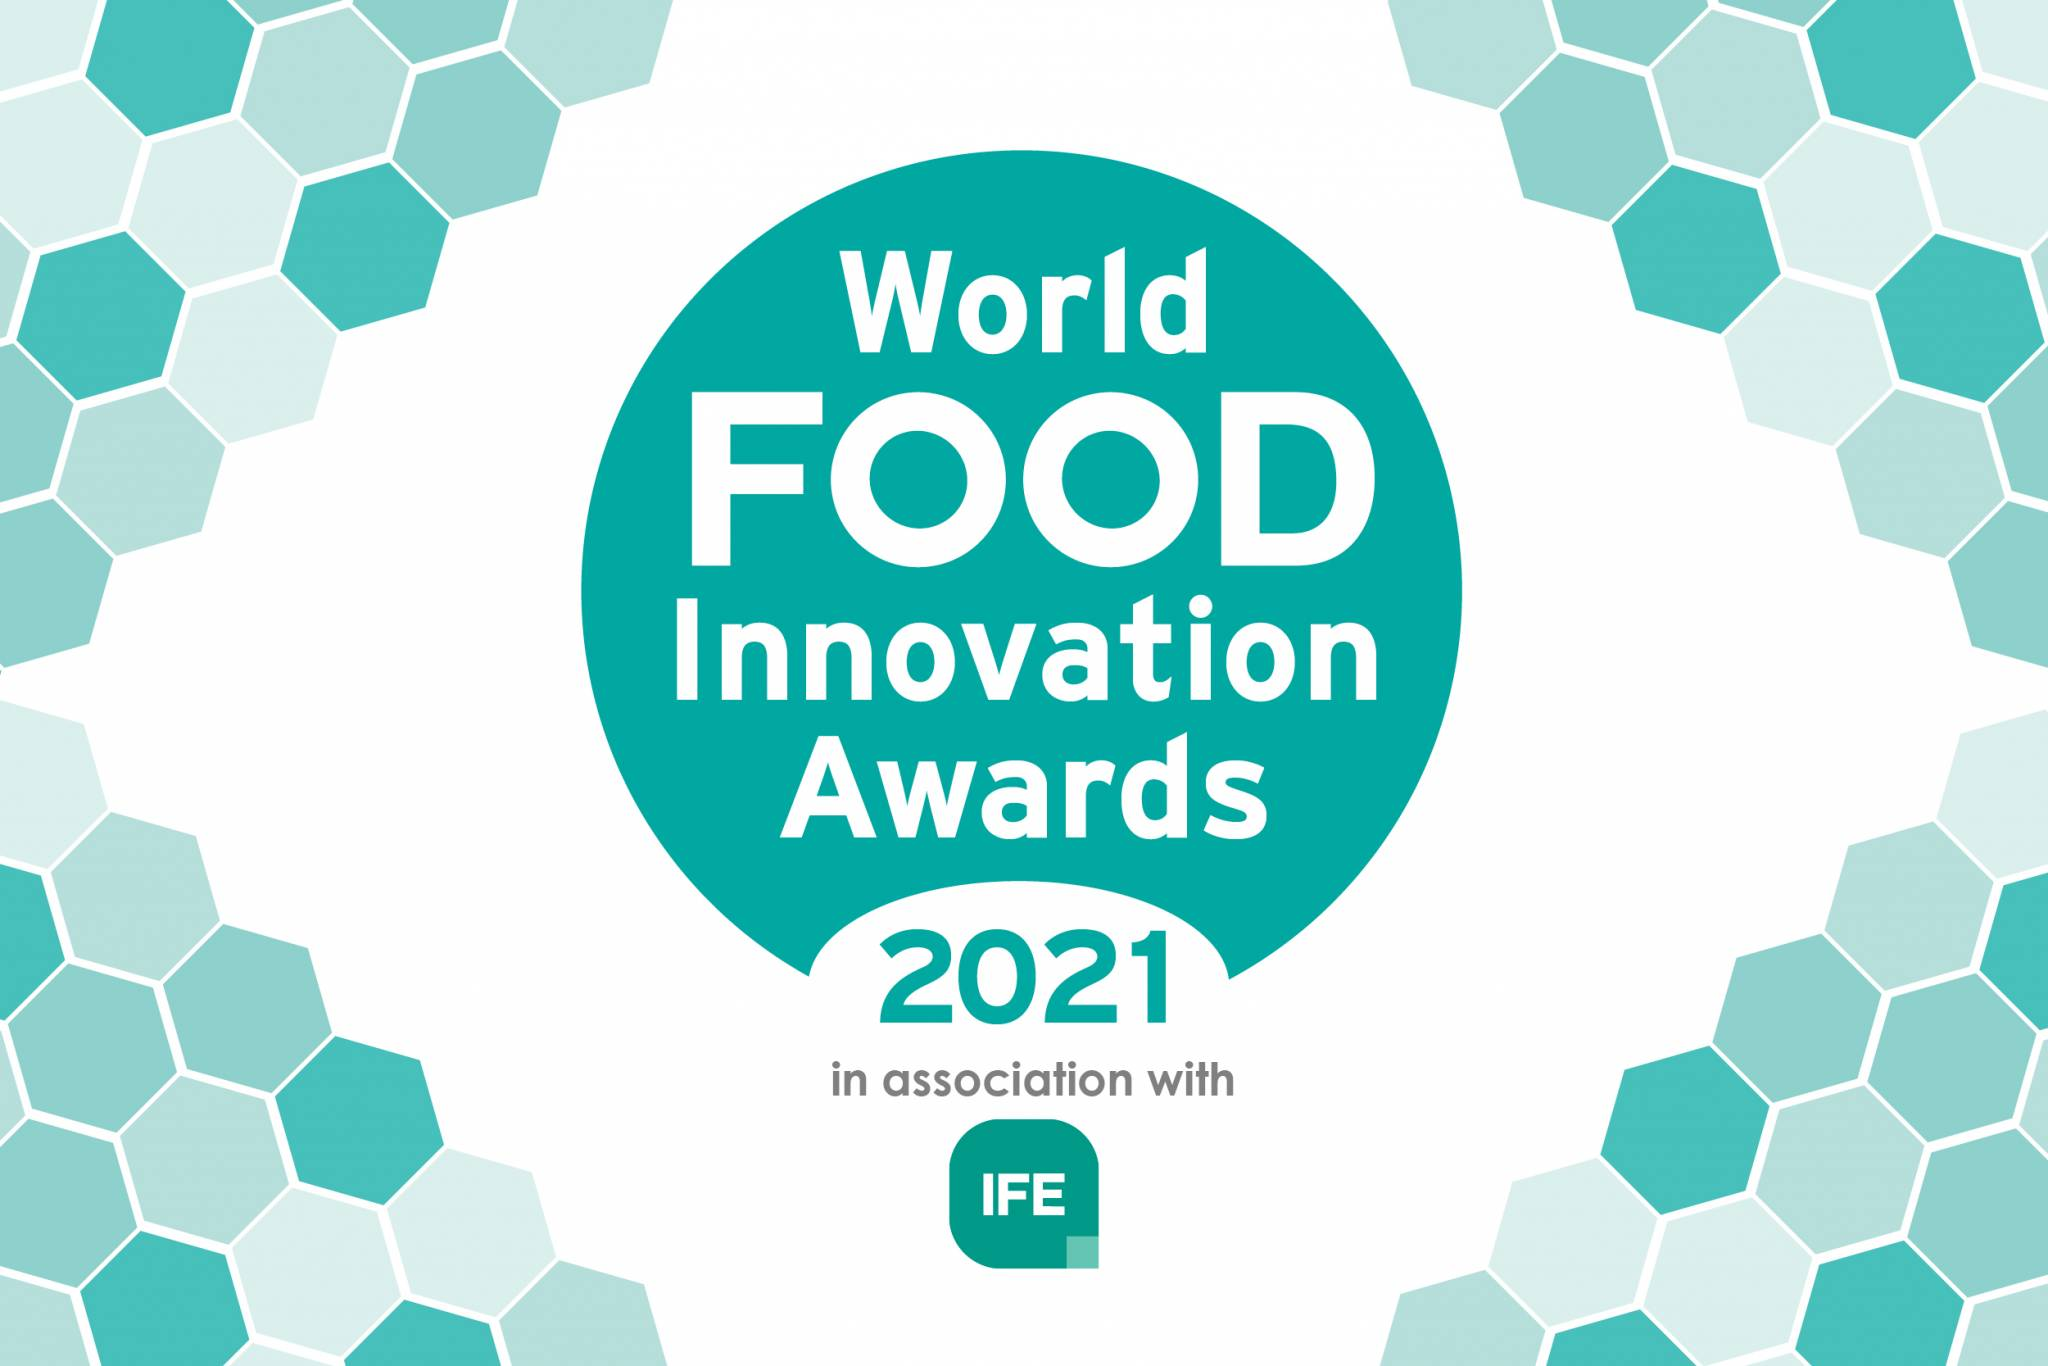 World Food Innovation Awards 2021 now open for entries